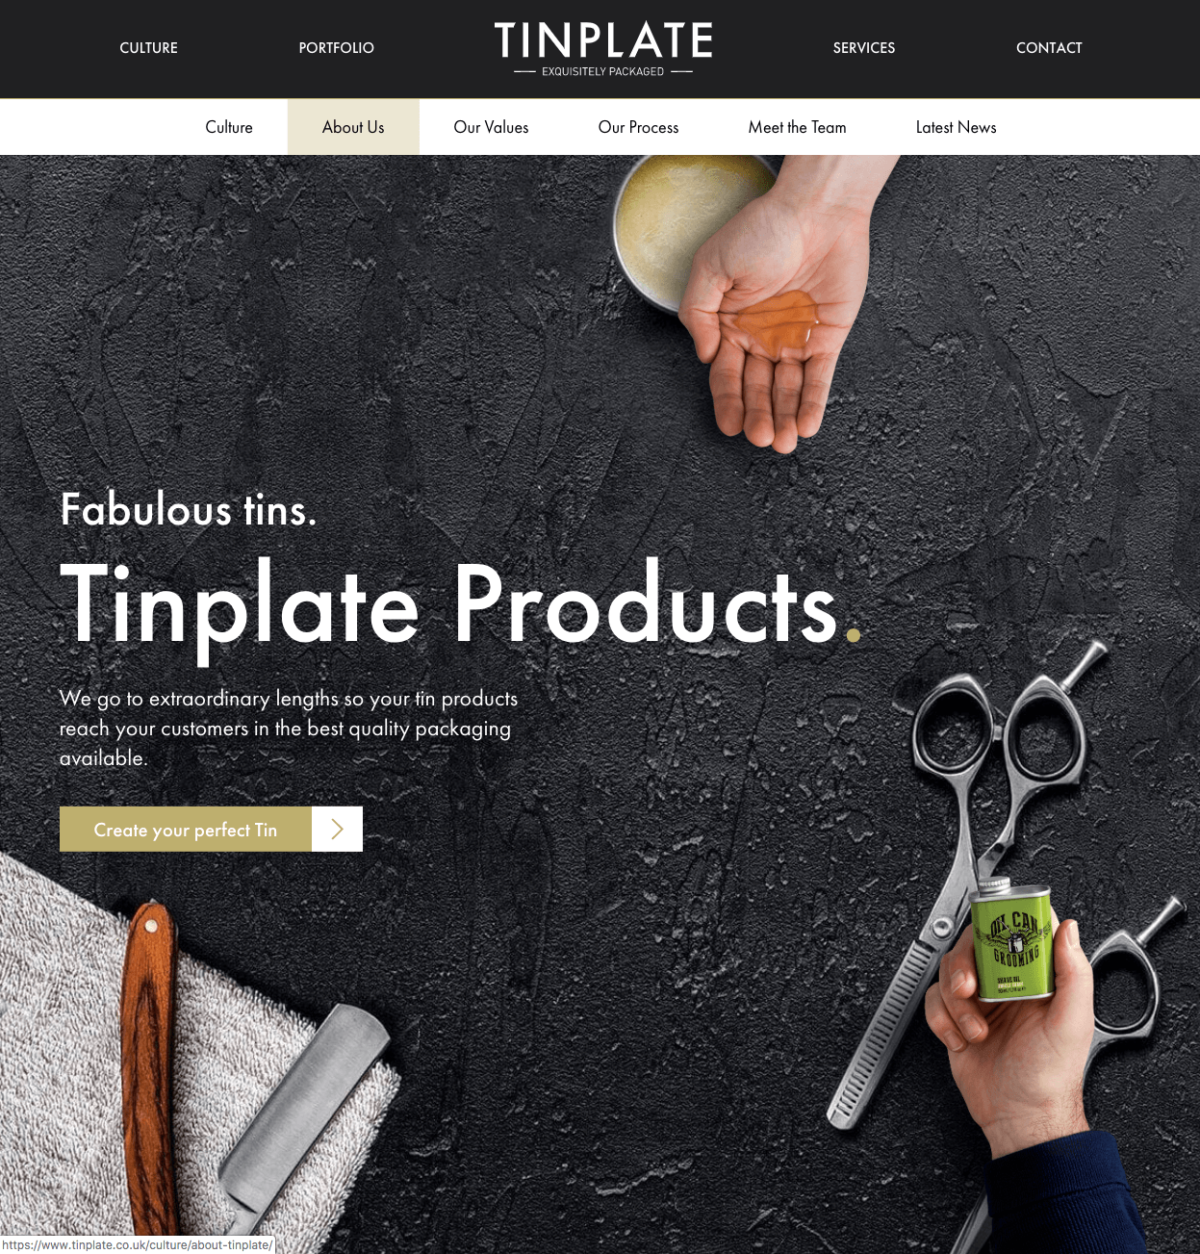 IAC Winners 2019: Tinplate Steal the Show with Best Manufacturing Website Award